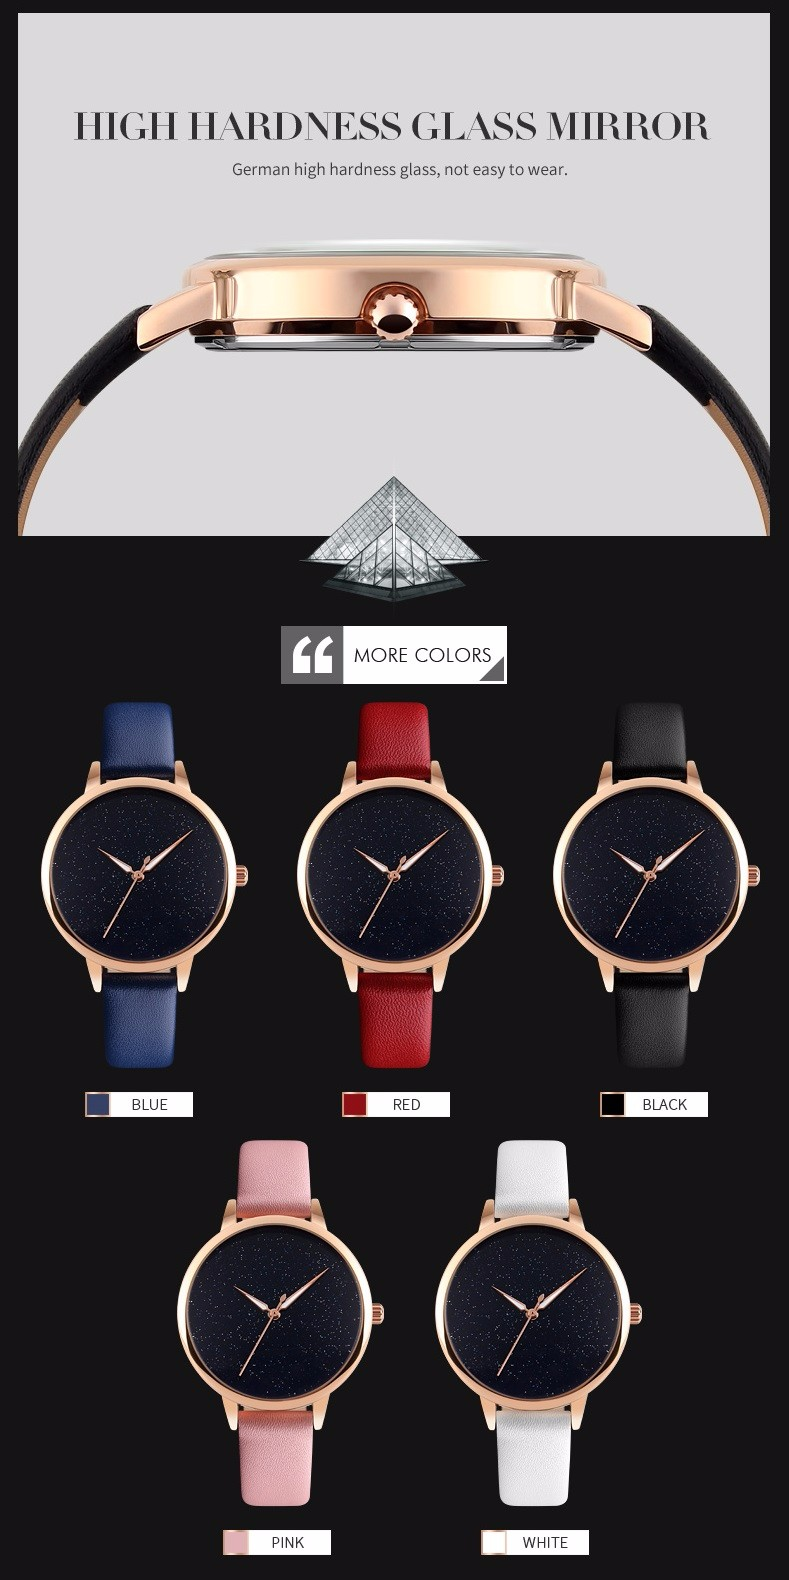 17 Hot sales watch women clock dress watch skmei brand women's Casual Leather quartz-watch Analog women's wrist watch gifts 3  17 Hot sales watch women clock dress watch skmei brand women's Casual Leather quartz-watch Analog women's wrist watch gifts HTB1lVN3OFXXXXc4XpXXq6xXFXXXx